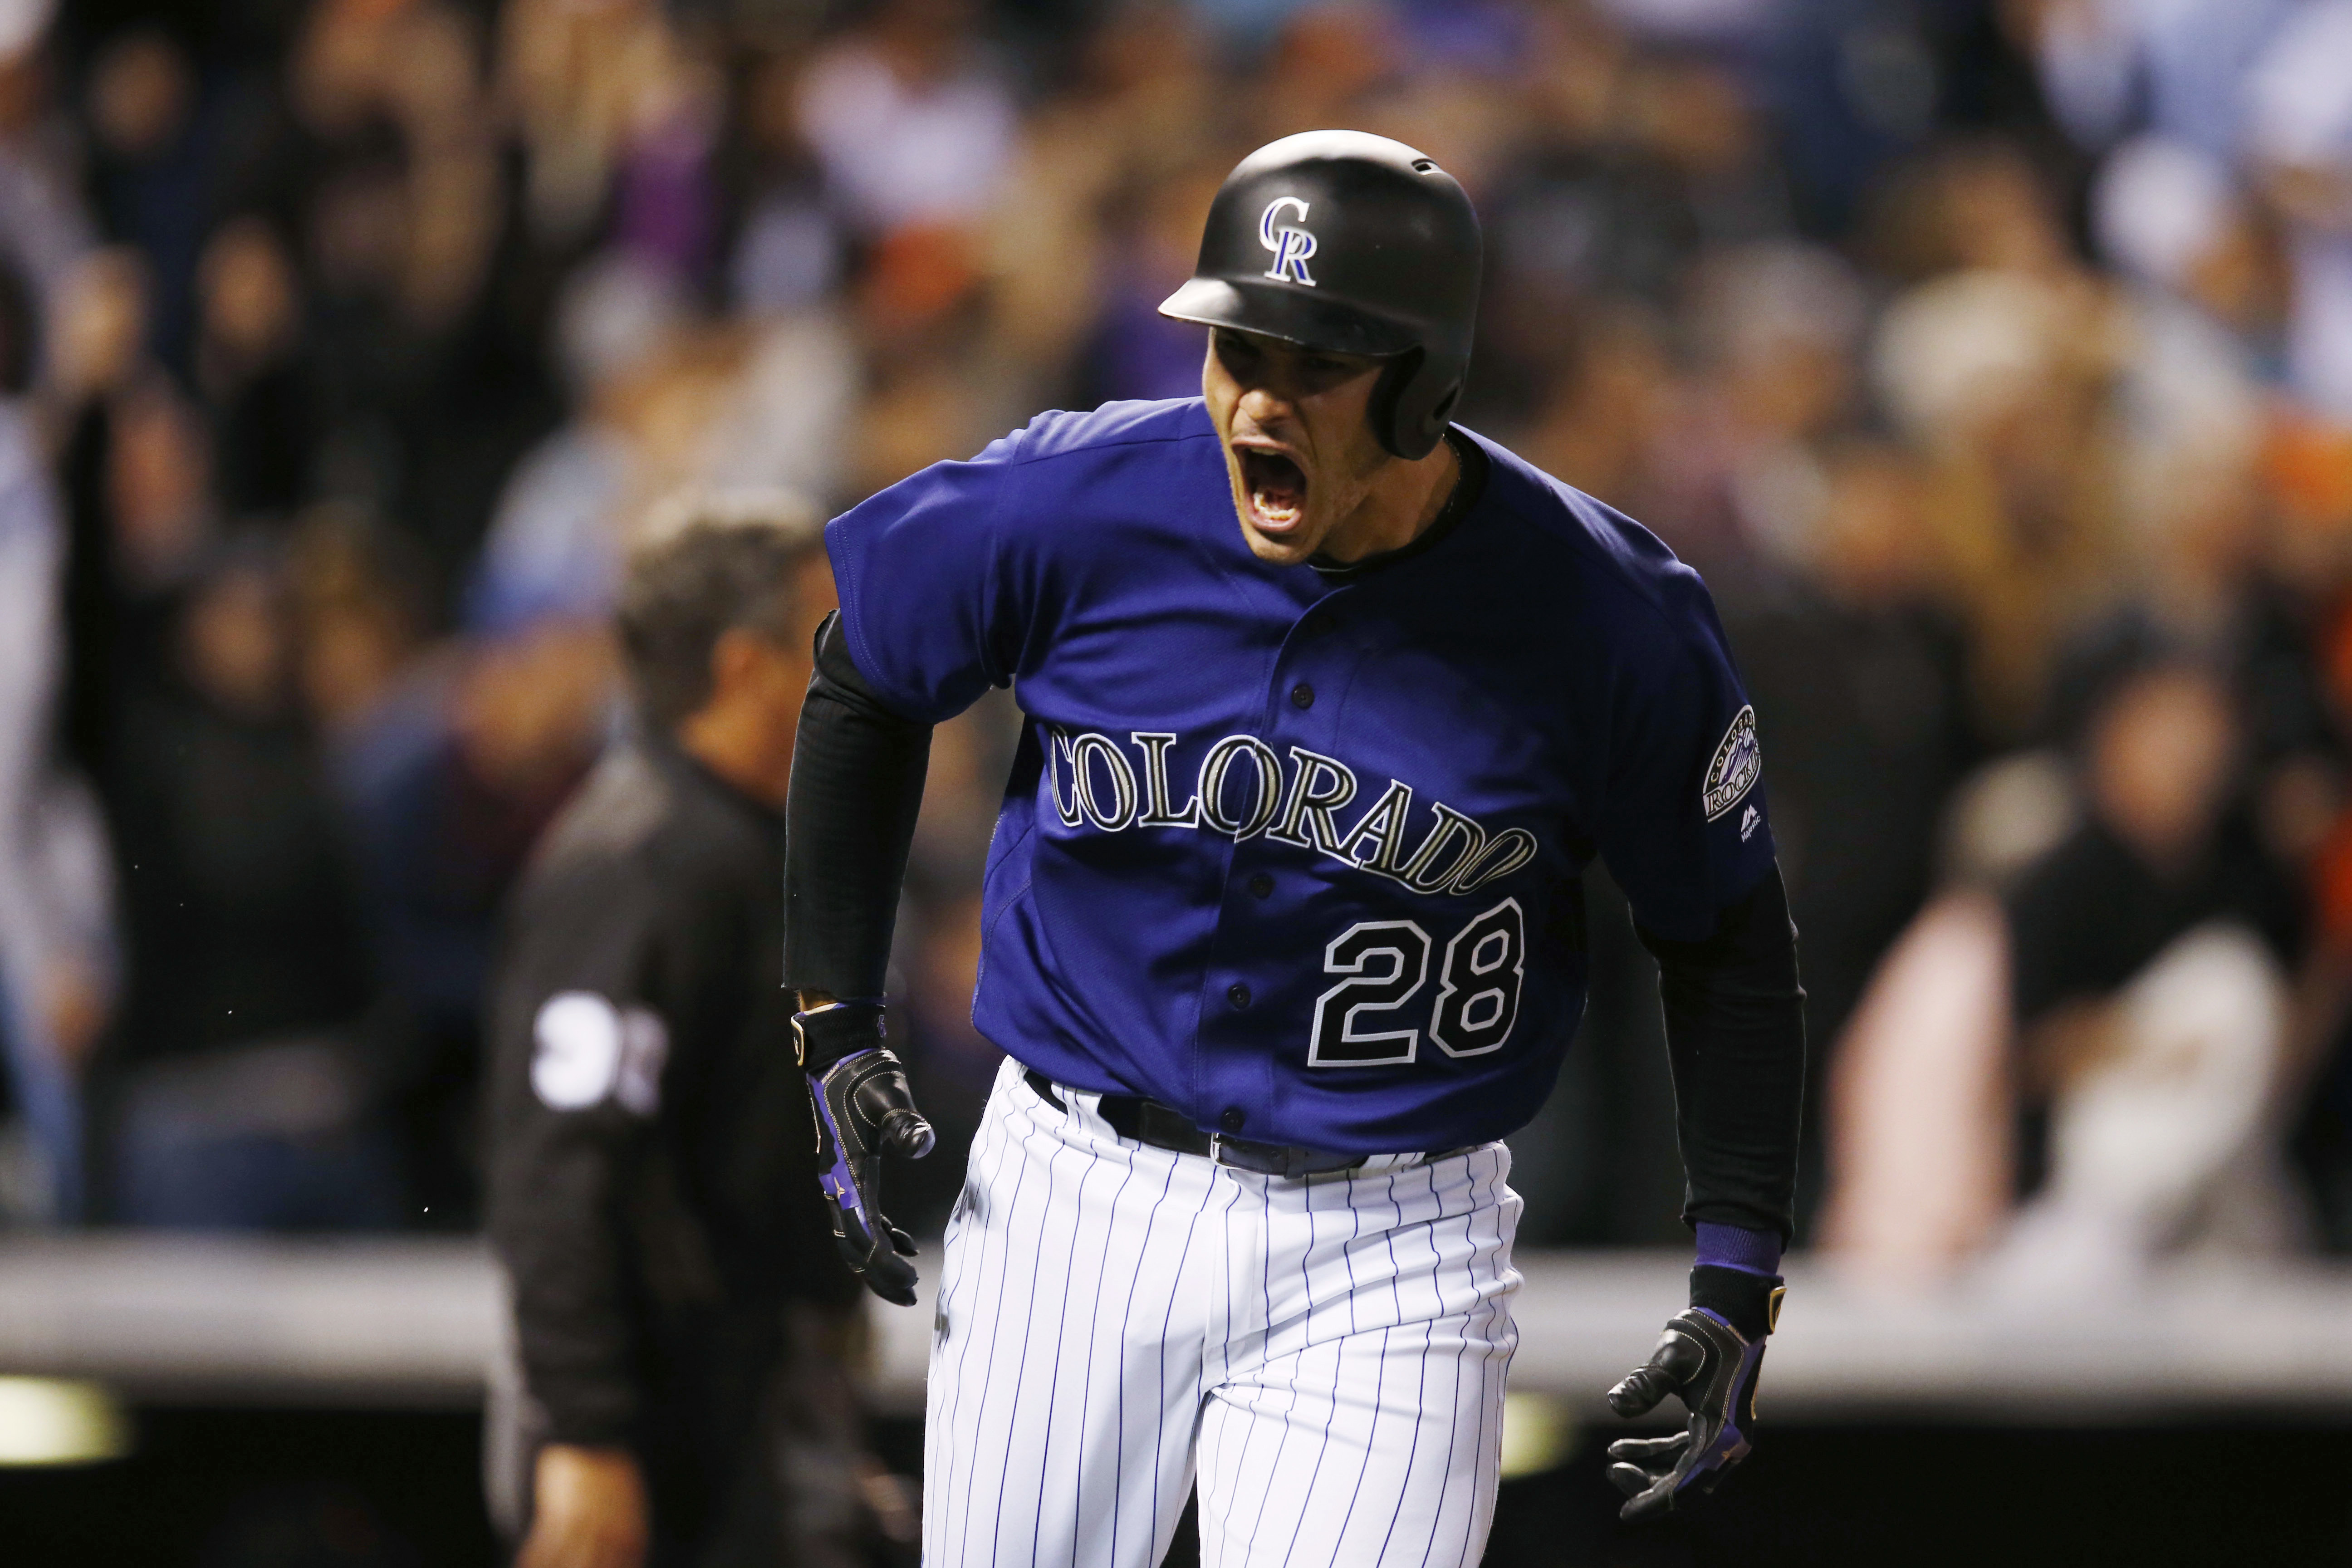 Colorado Rockies' Nolan Arenado yells as he runs up the first base line after hitting a three-run home run off San Francisco Giants relief pitcher Josh Osich in the eighth inning of a baseball game Wednesday, April 13, 2016, in Denver. Colorado won 10-6.